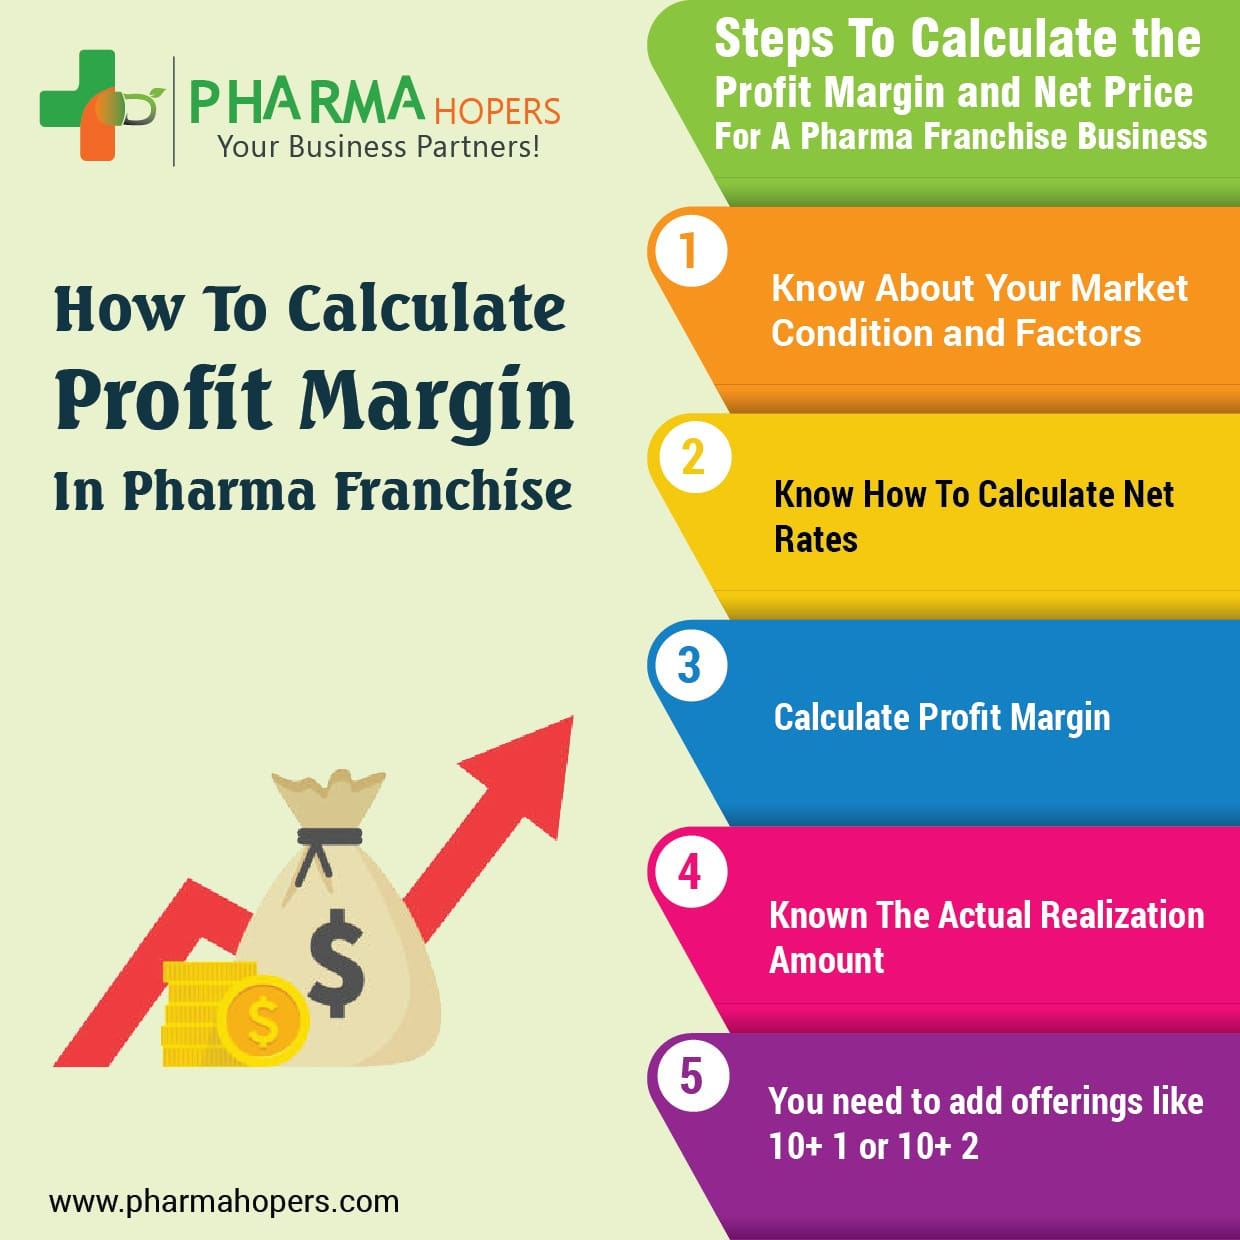 How To Calculate Profit Margin In Pharma Franchise